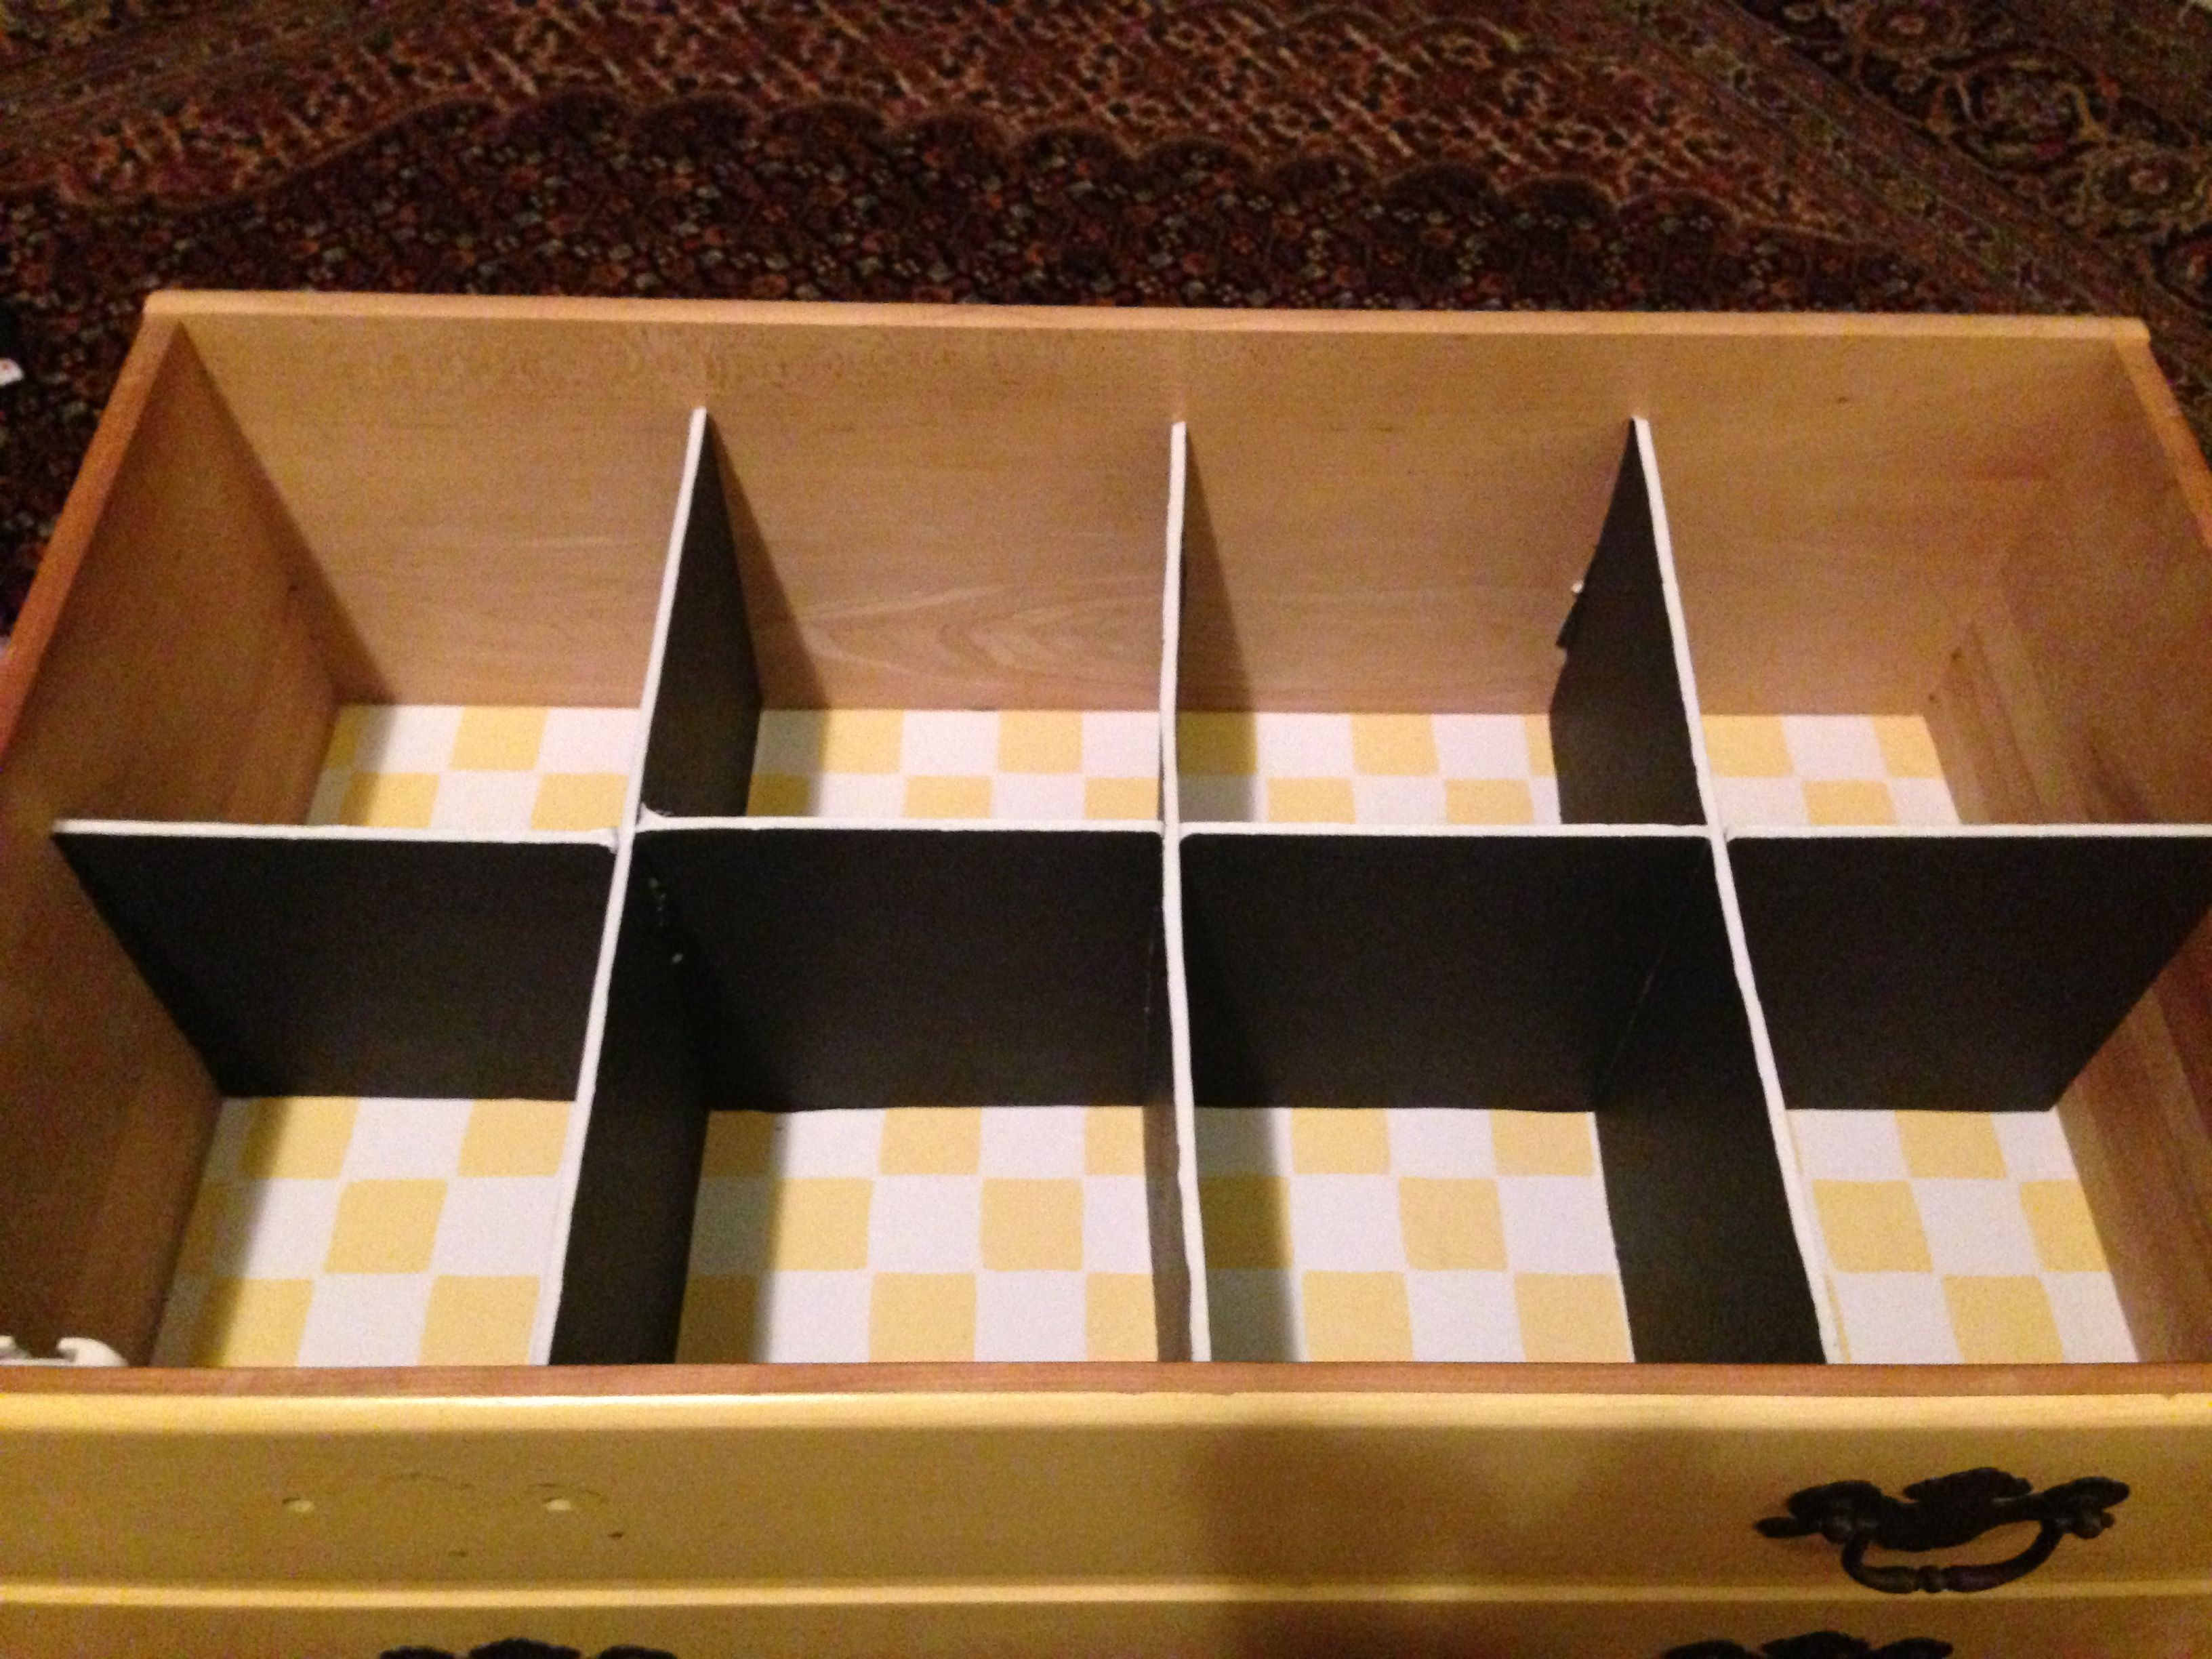 Diy Drawer Dividers Foam Board 1 Each At Dollar Store Requires